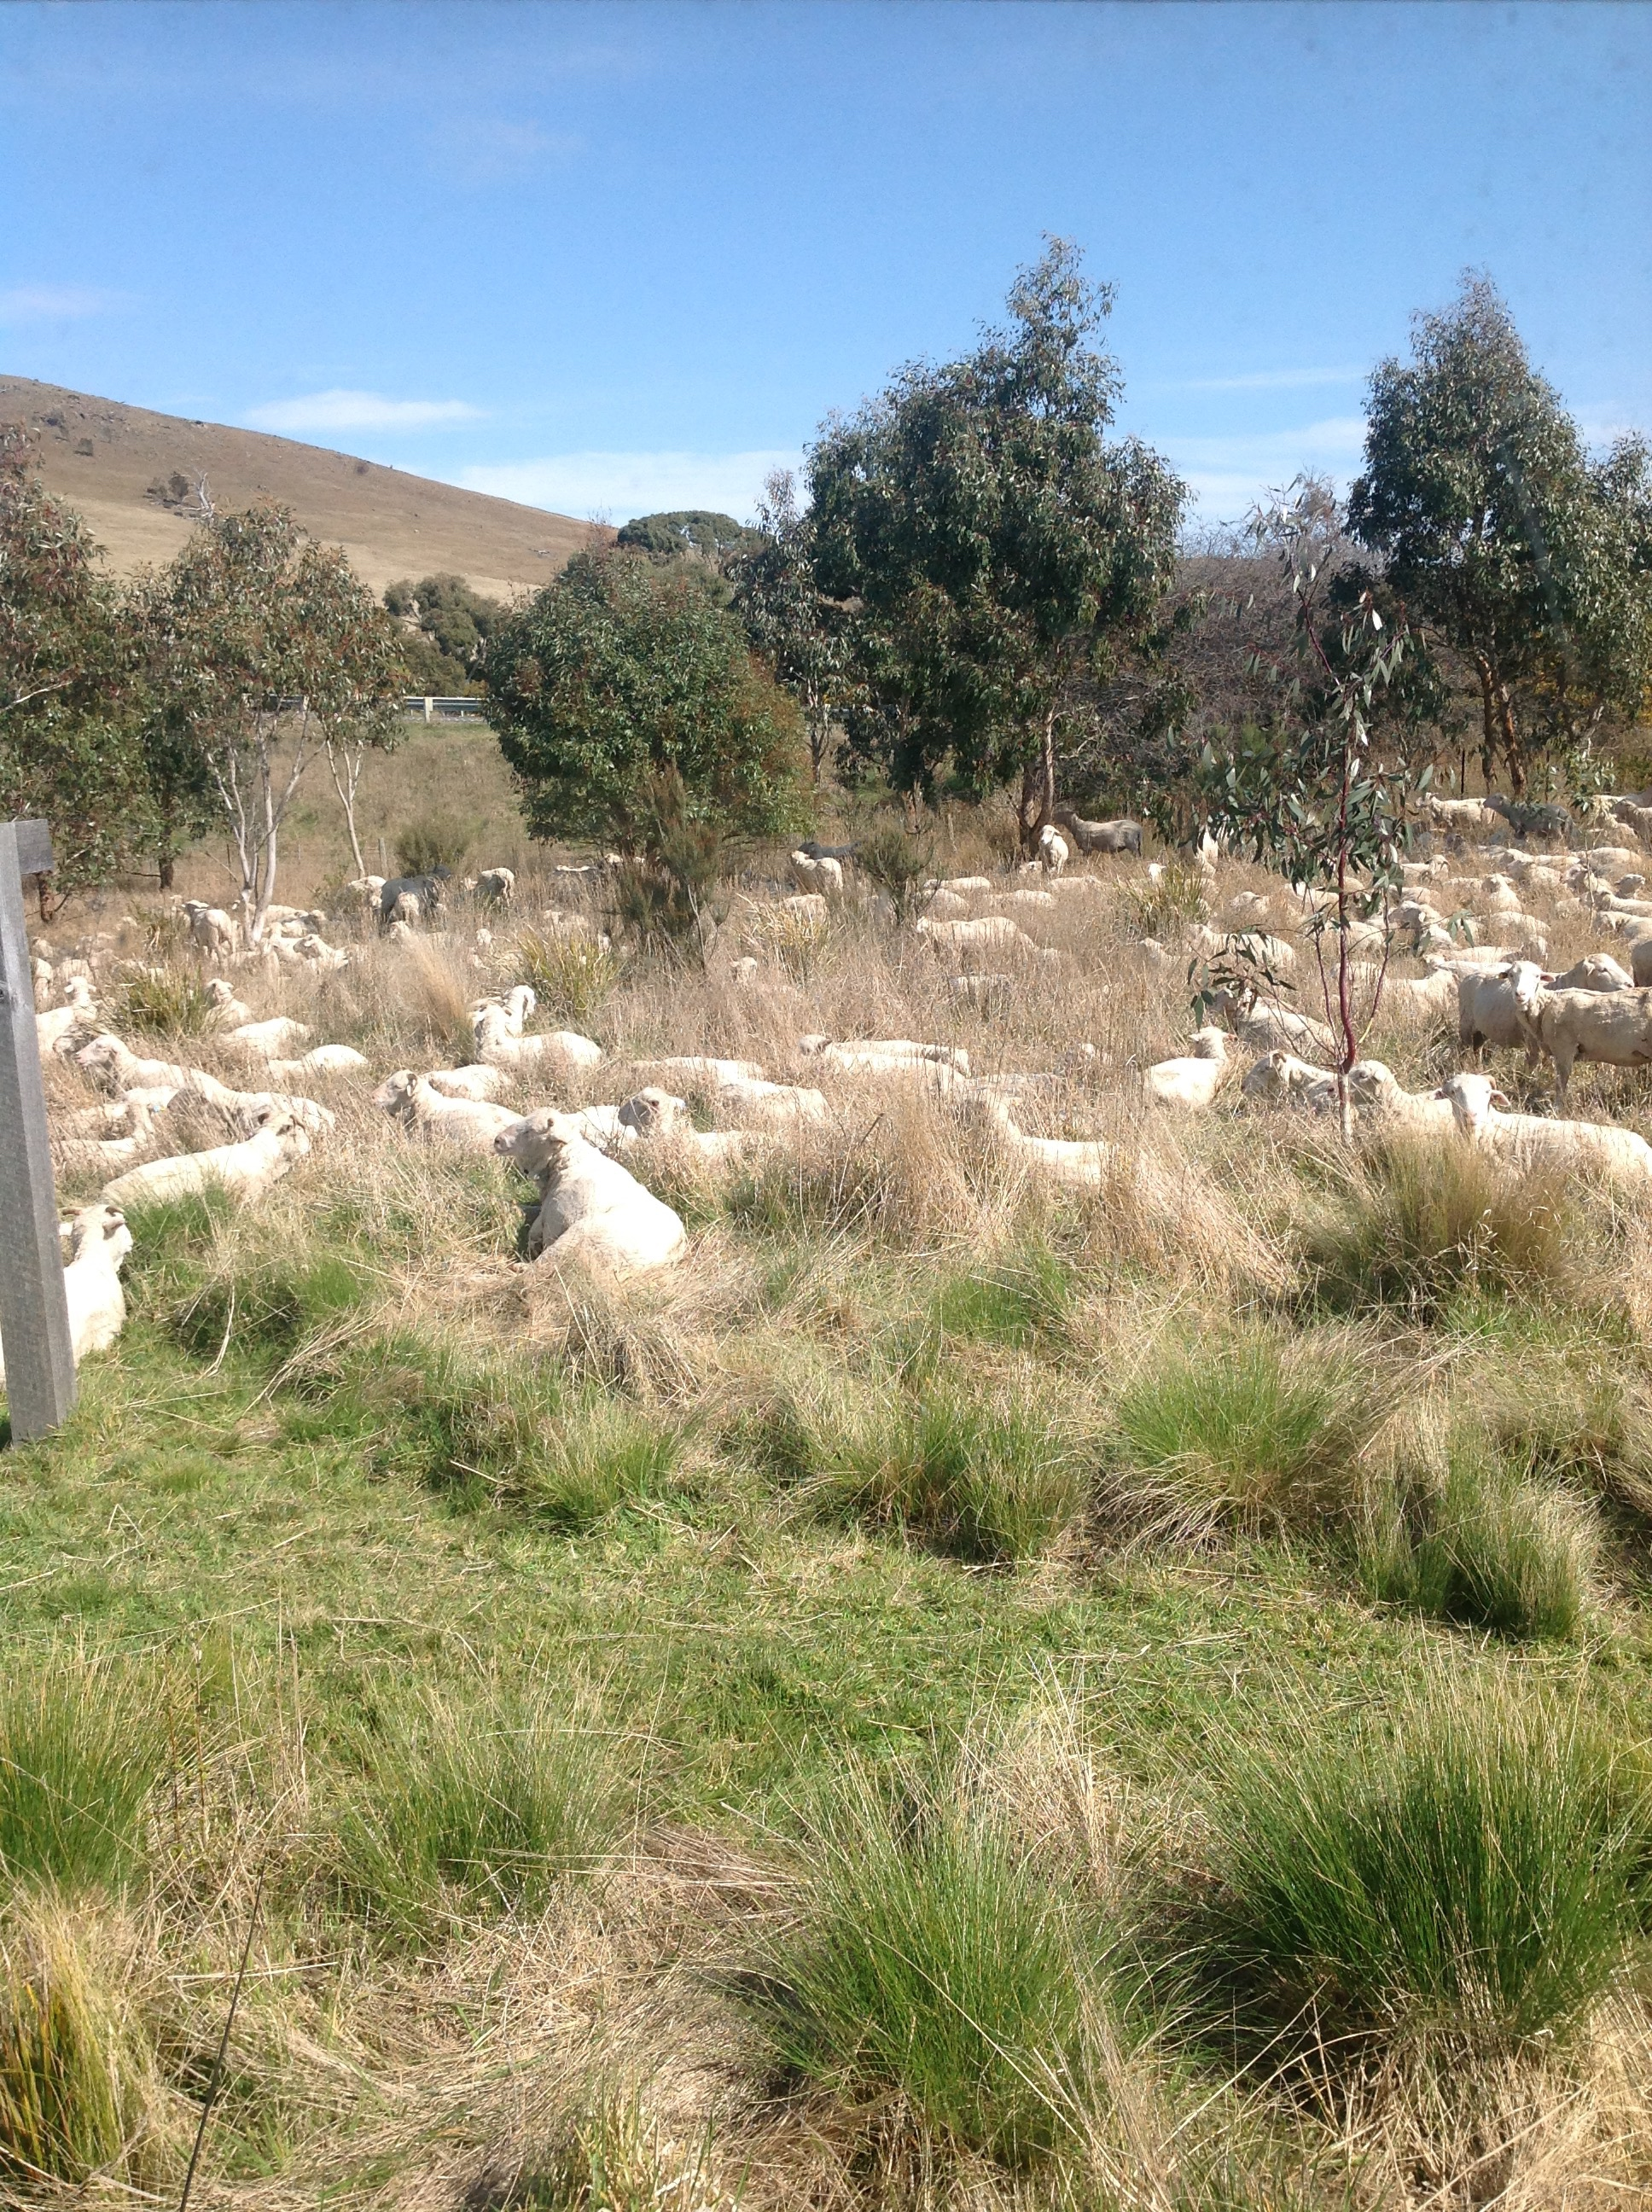 A week or so after shearing, the ewes enjoying sunshine and delectable browse  in the area outside my kitchen window.  I didn't shear the lambs--they don't have enough wool yet to make it worth the stress.